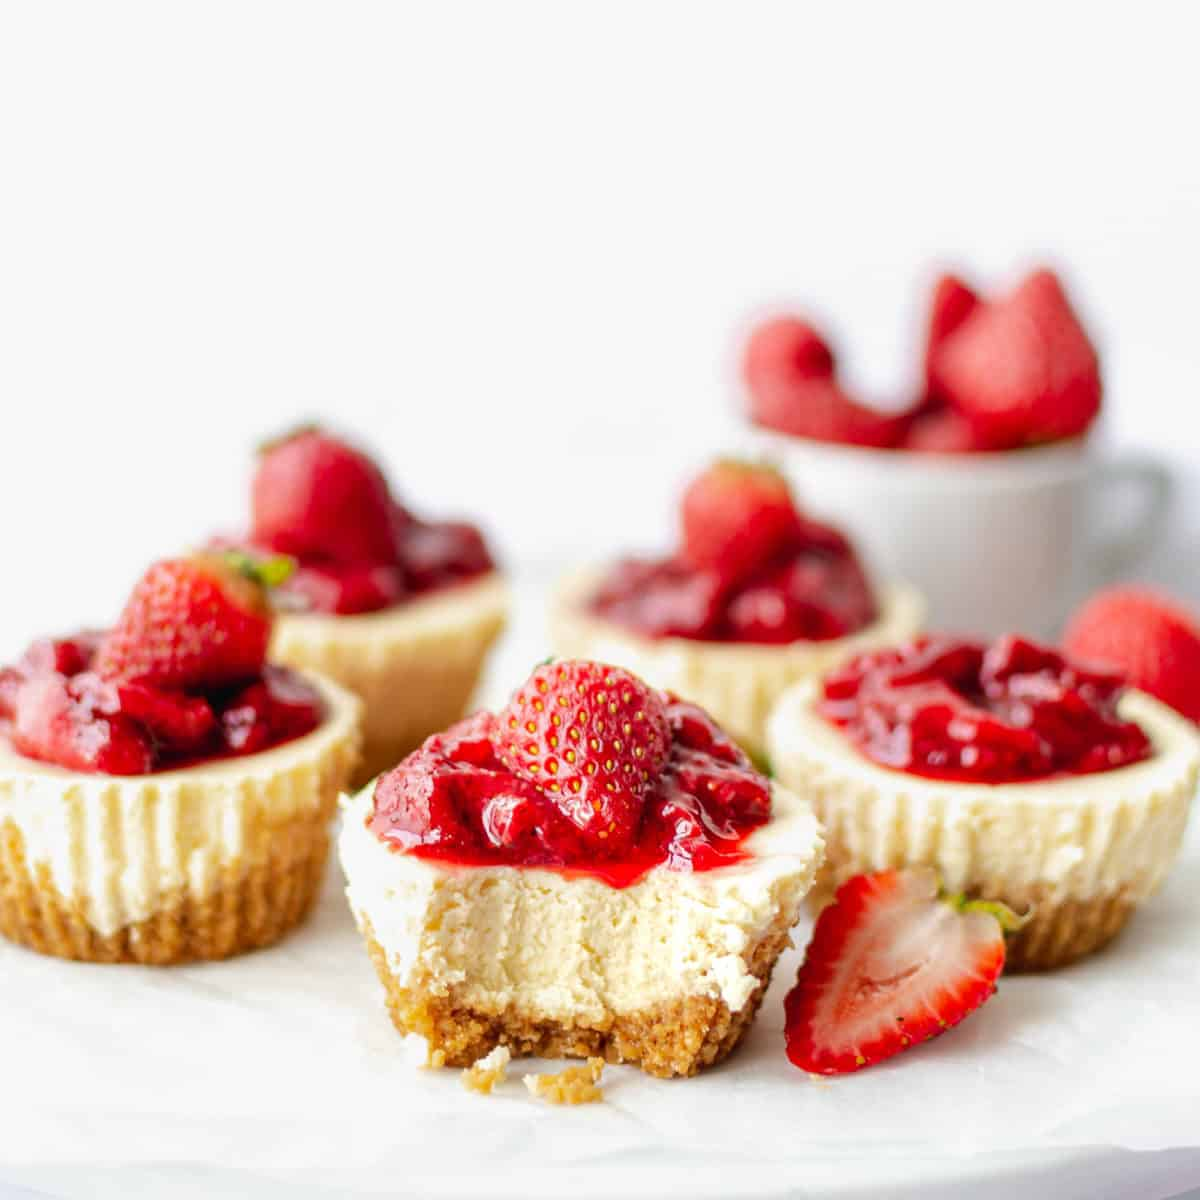 A mini strawberry cheesecake with a bite taken from it.